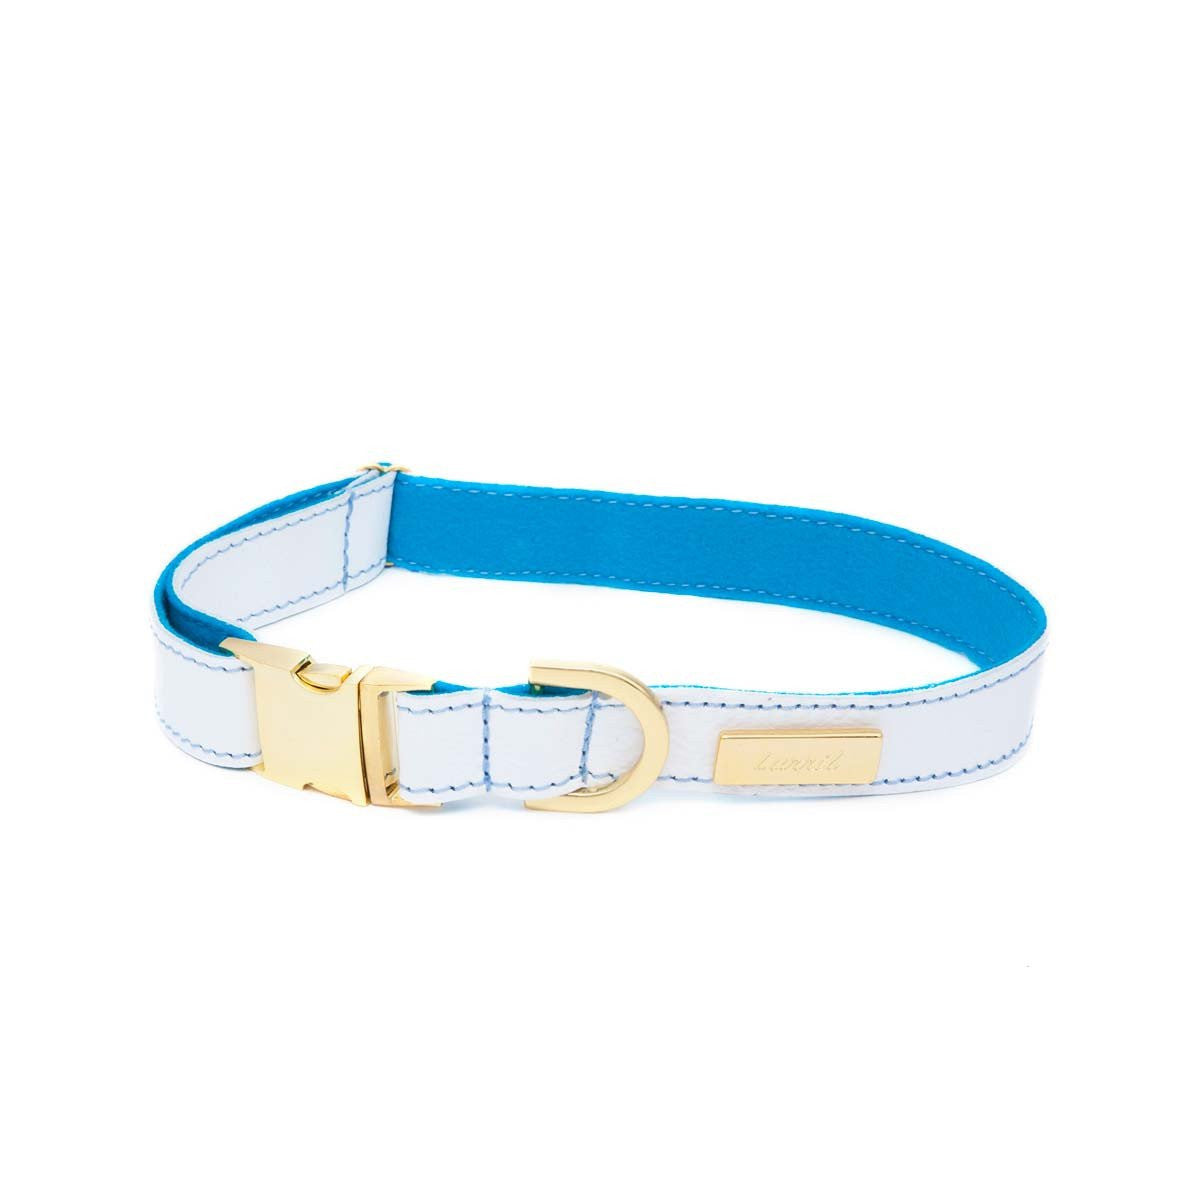 White Soft Leather Dog Collar with Wool Lining